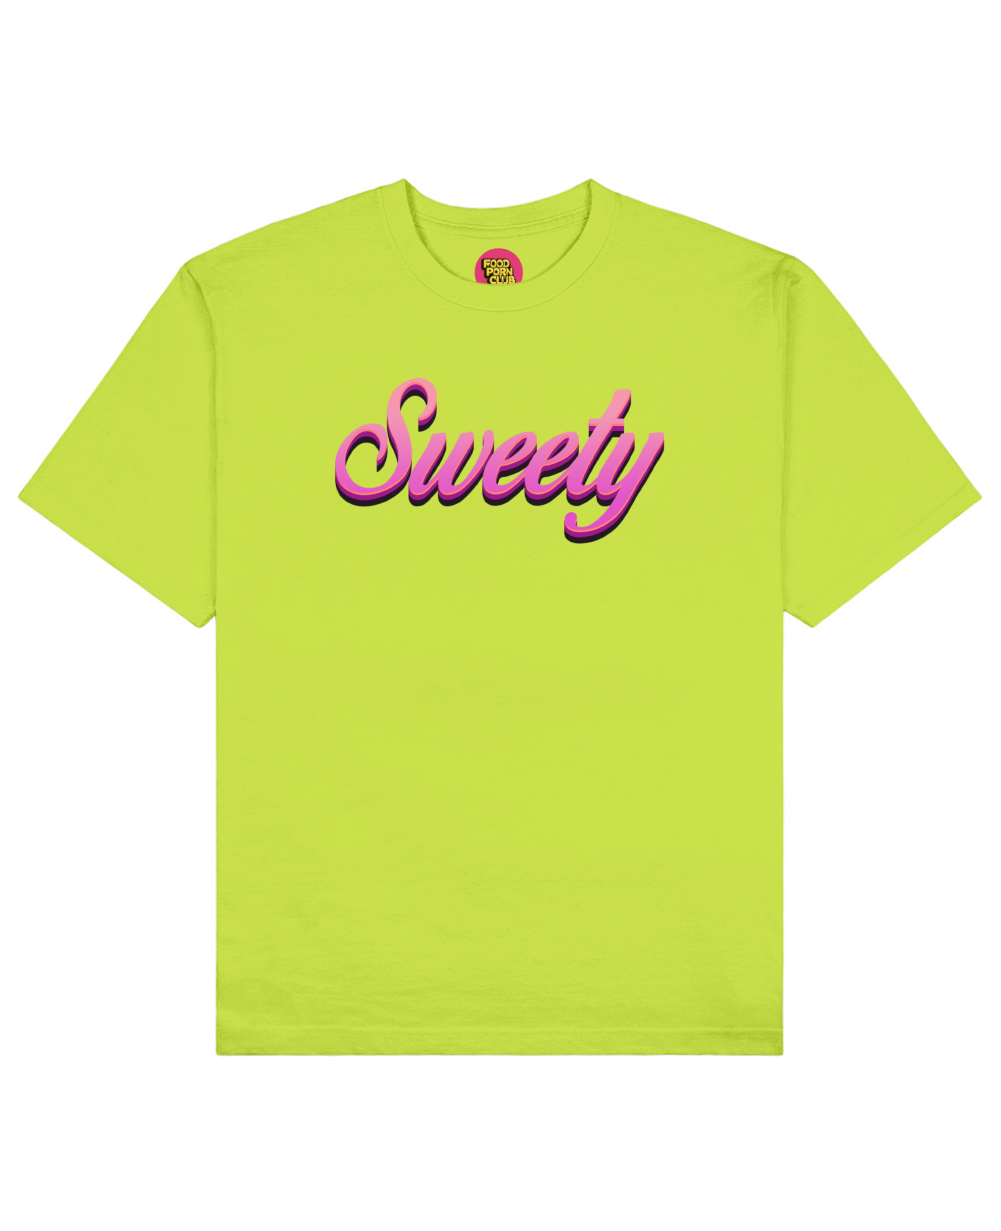 Sweety Print T-Shirt in Light Green - T-Shirts - FOOD PORN CLUB - BRANMA